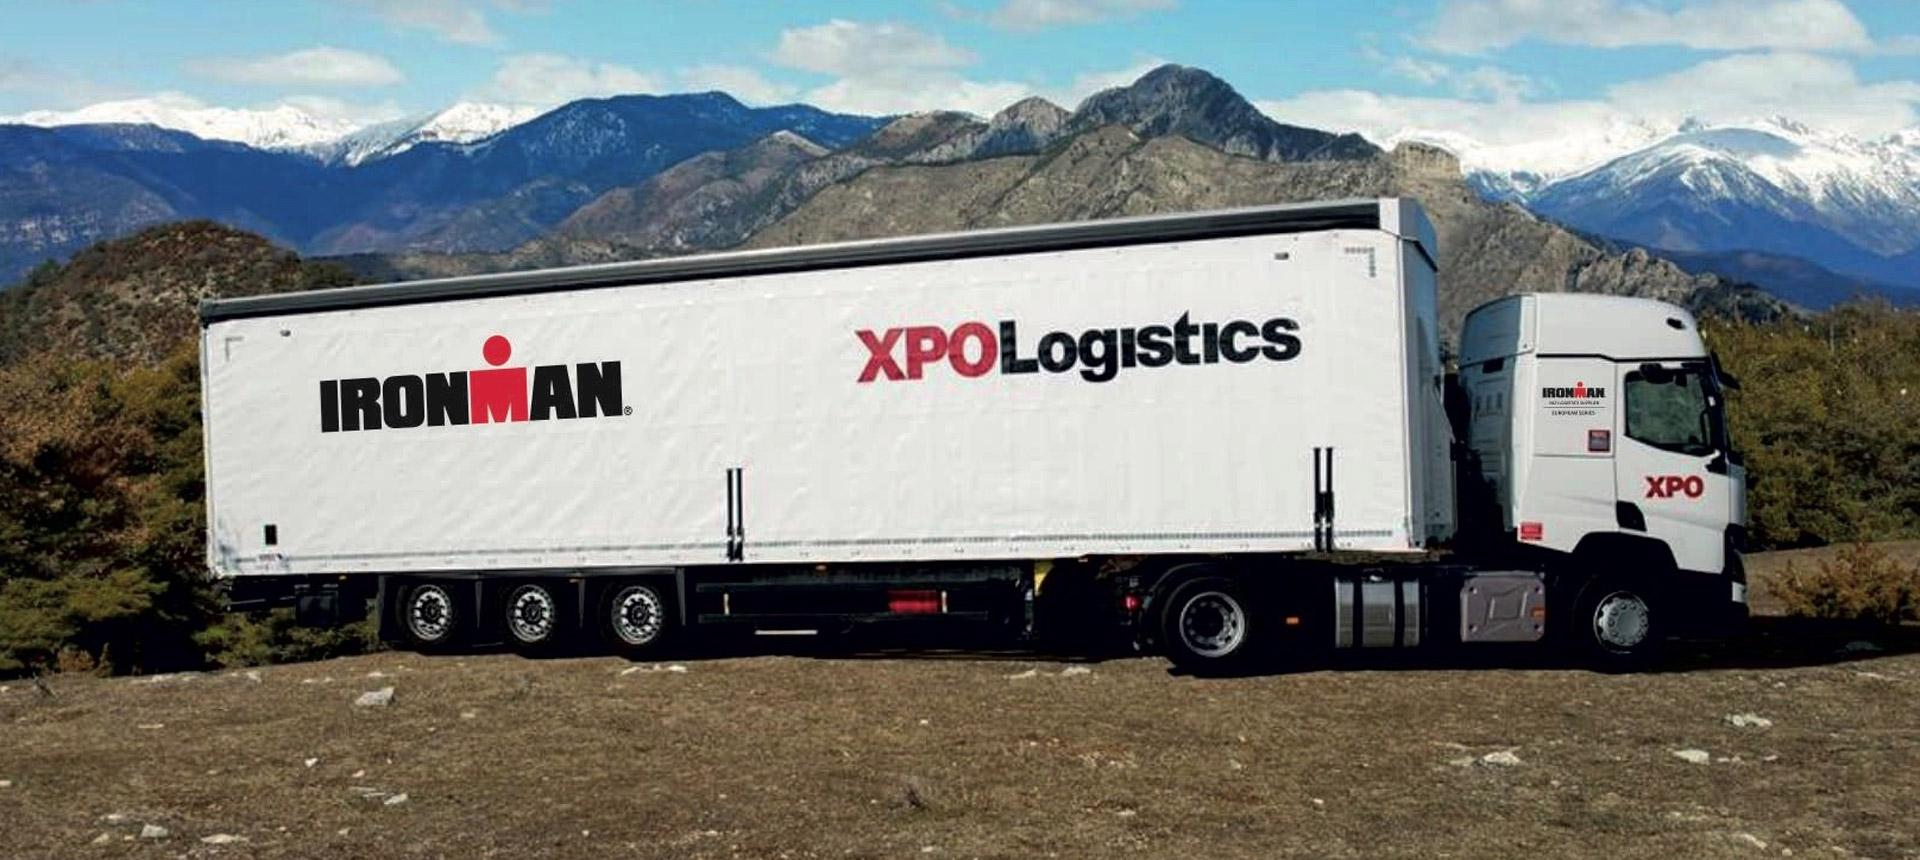 IRONMAN and XPO Logistics cobranded truck